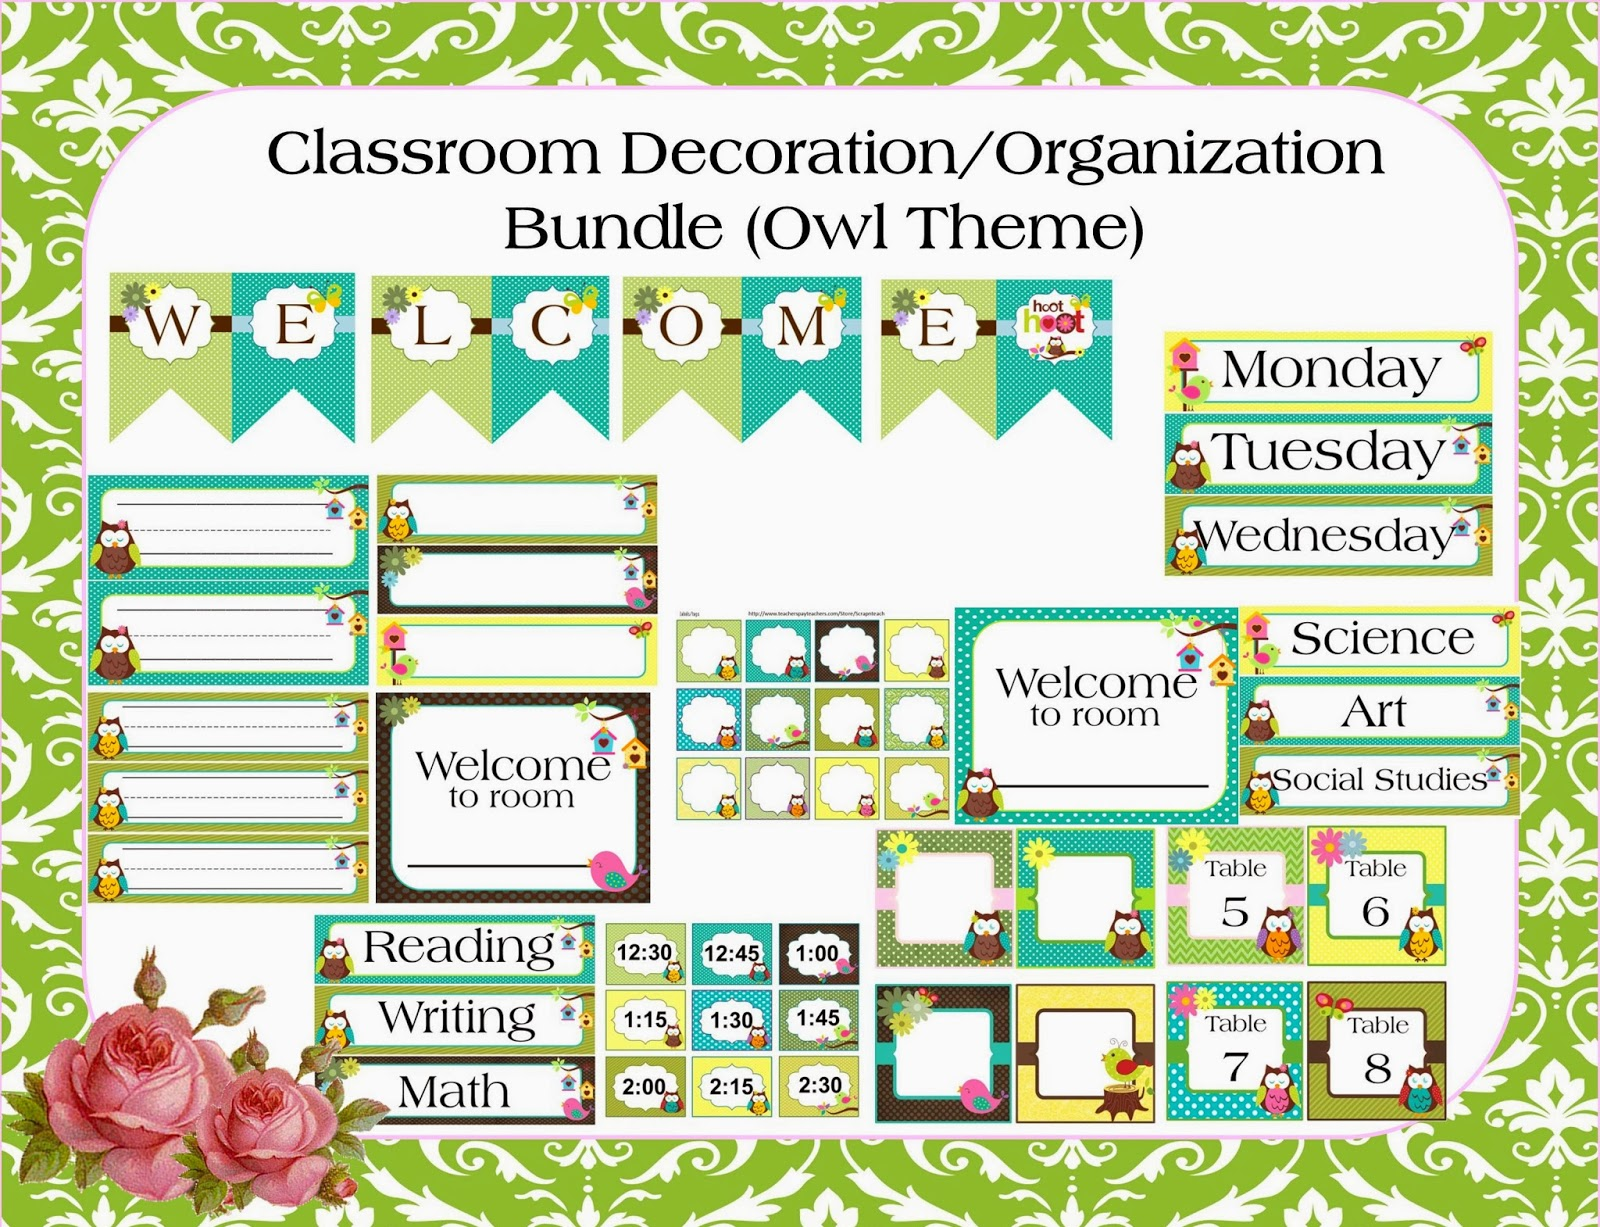 http://www.teacherspayteachers.com/Product/Classroom-Decoration-Bundle-Owl-Theme-615819